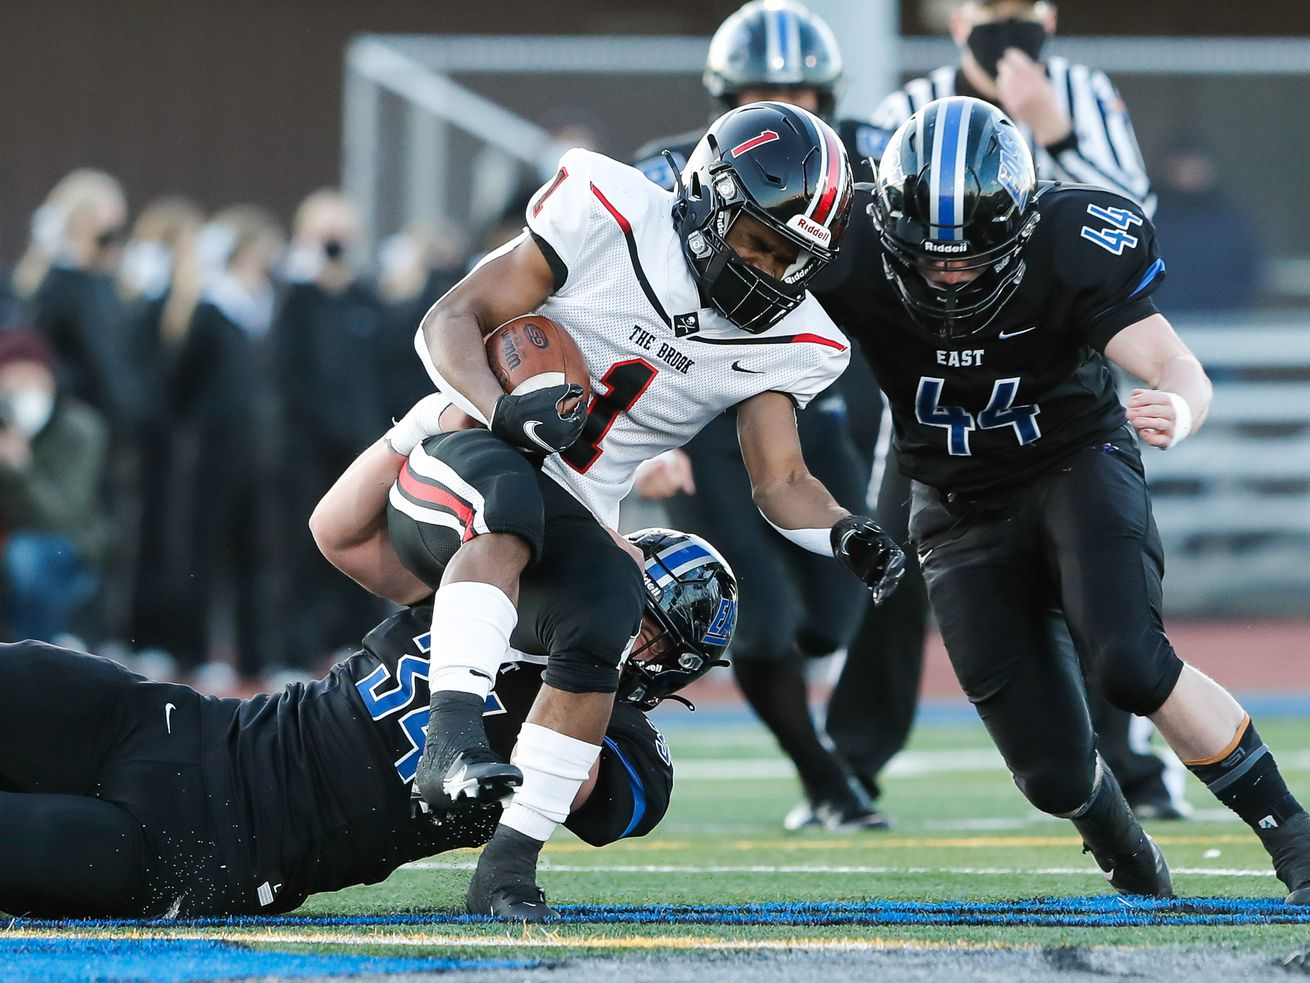 Lincoln-Way East's Jack Hawkinson (34) and Ben Kingsbury (44) take down Bollingbrook's Jaquan Howard (1).